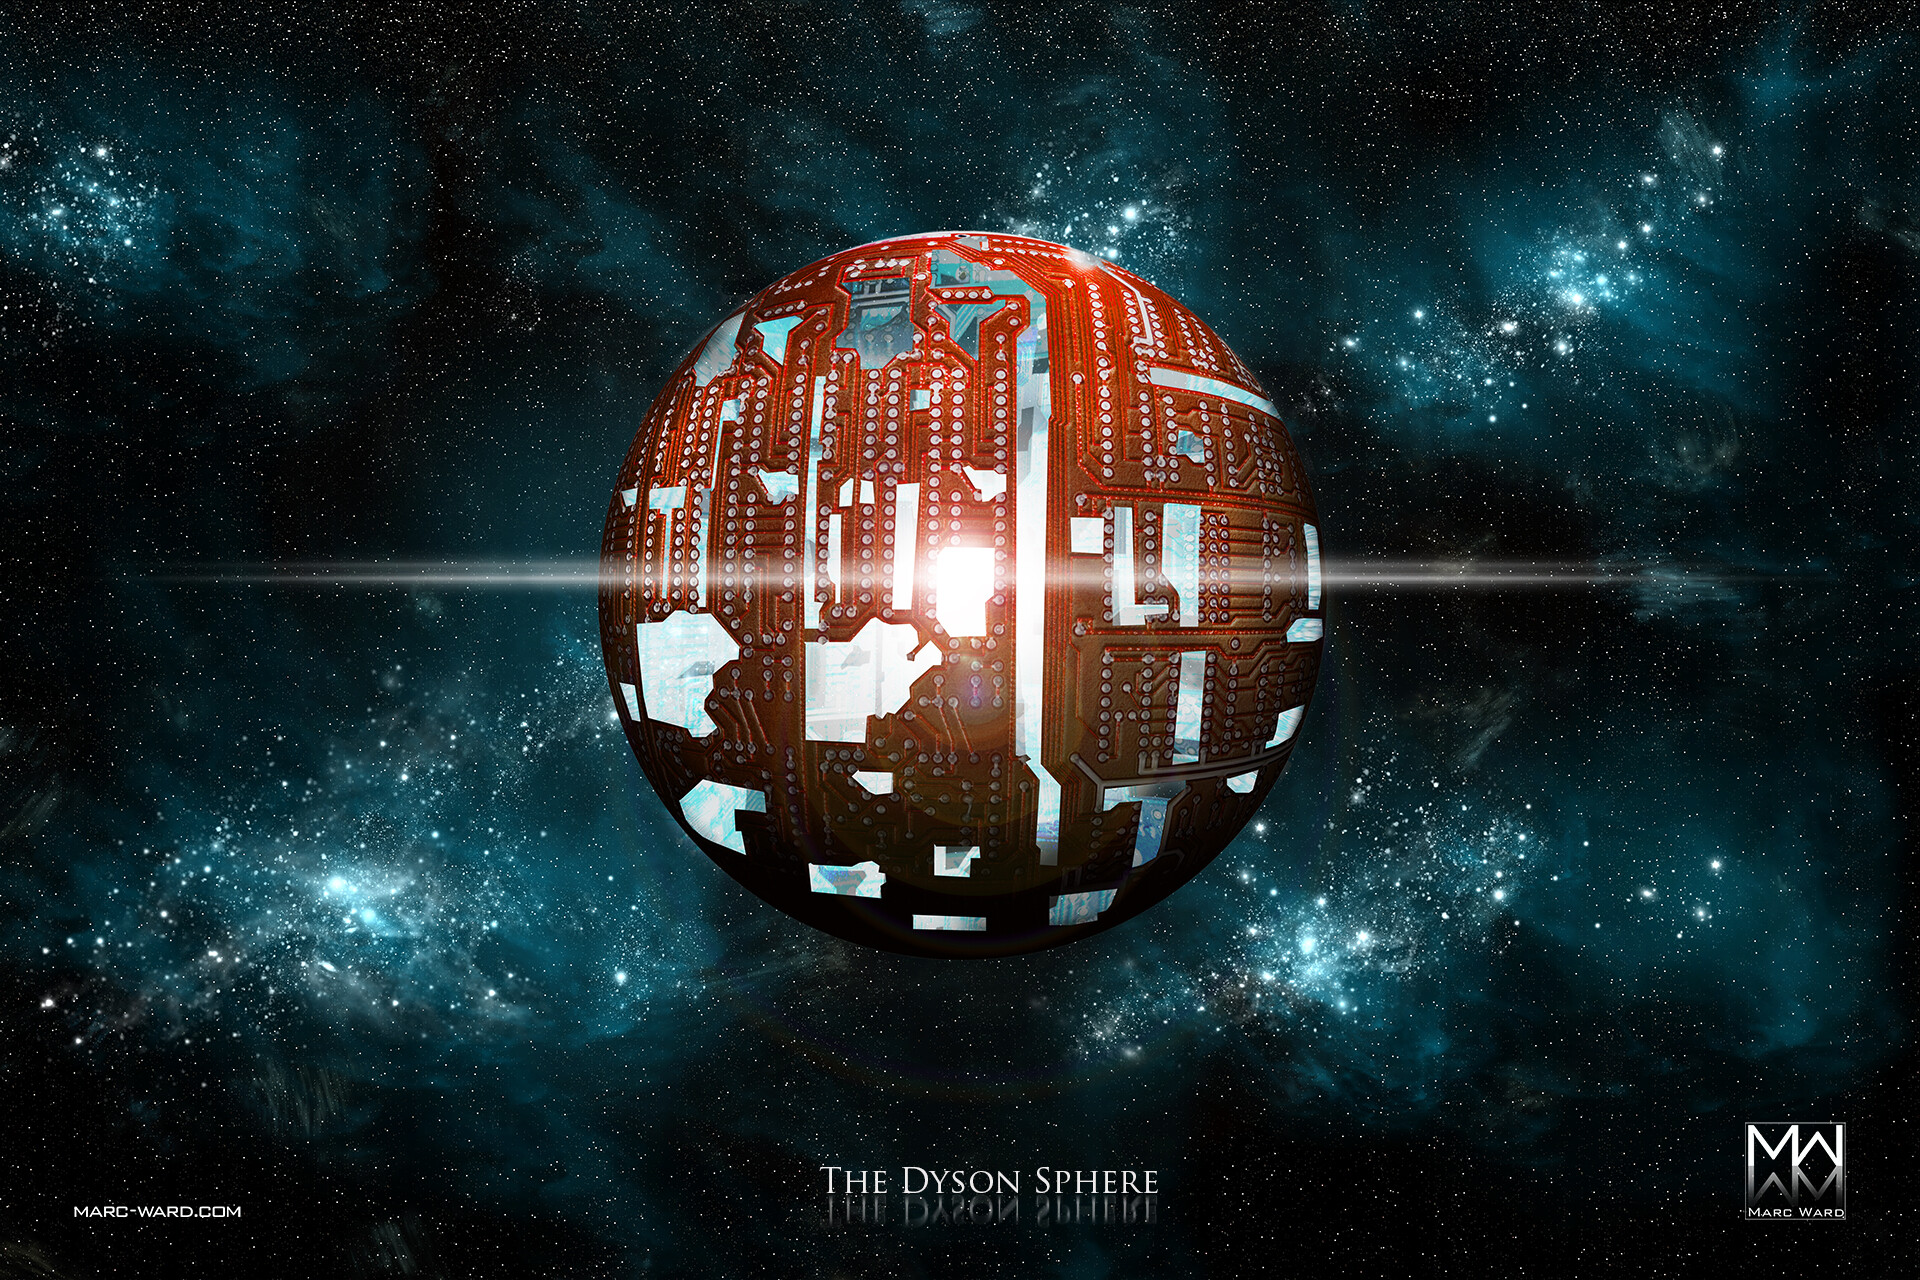 Marc ward dysonsphere001h as